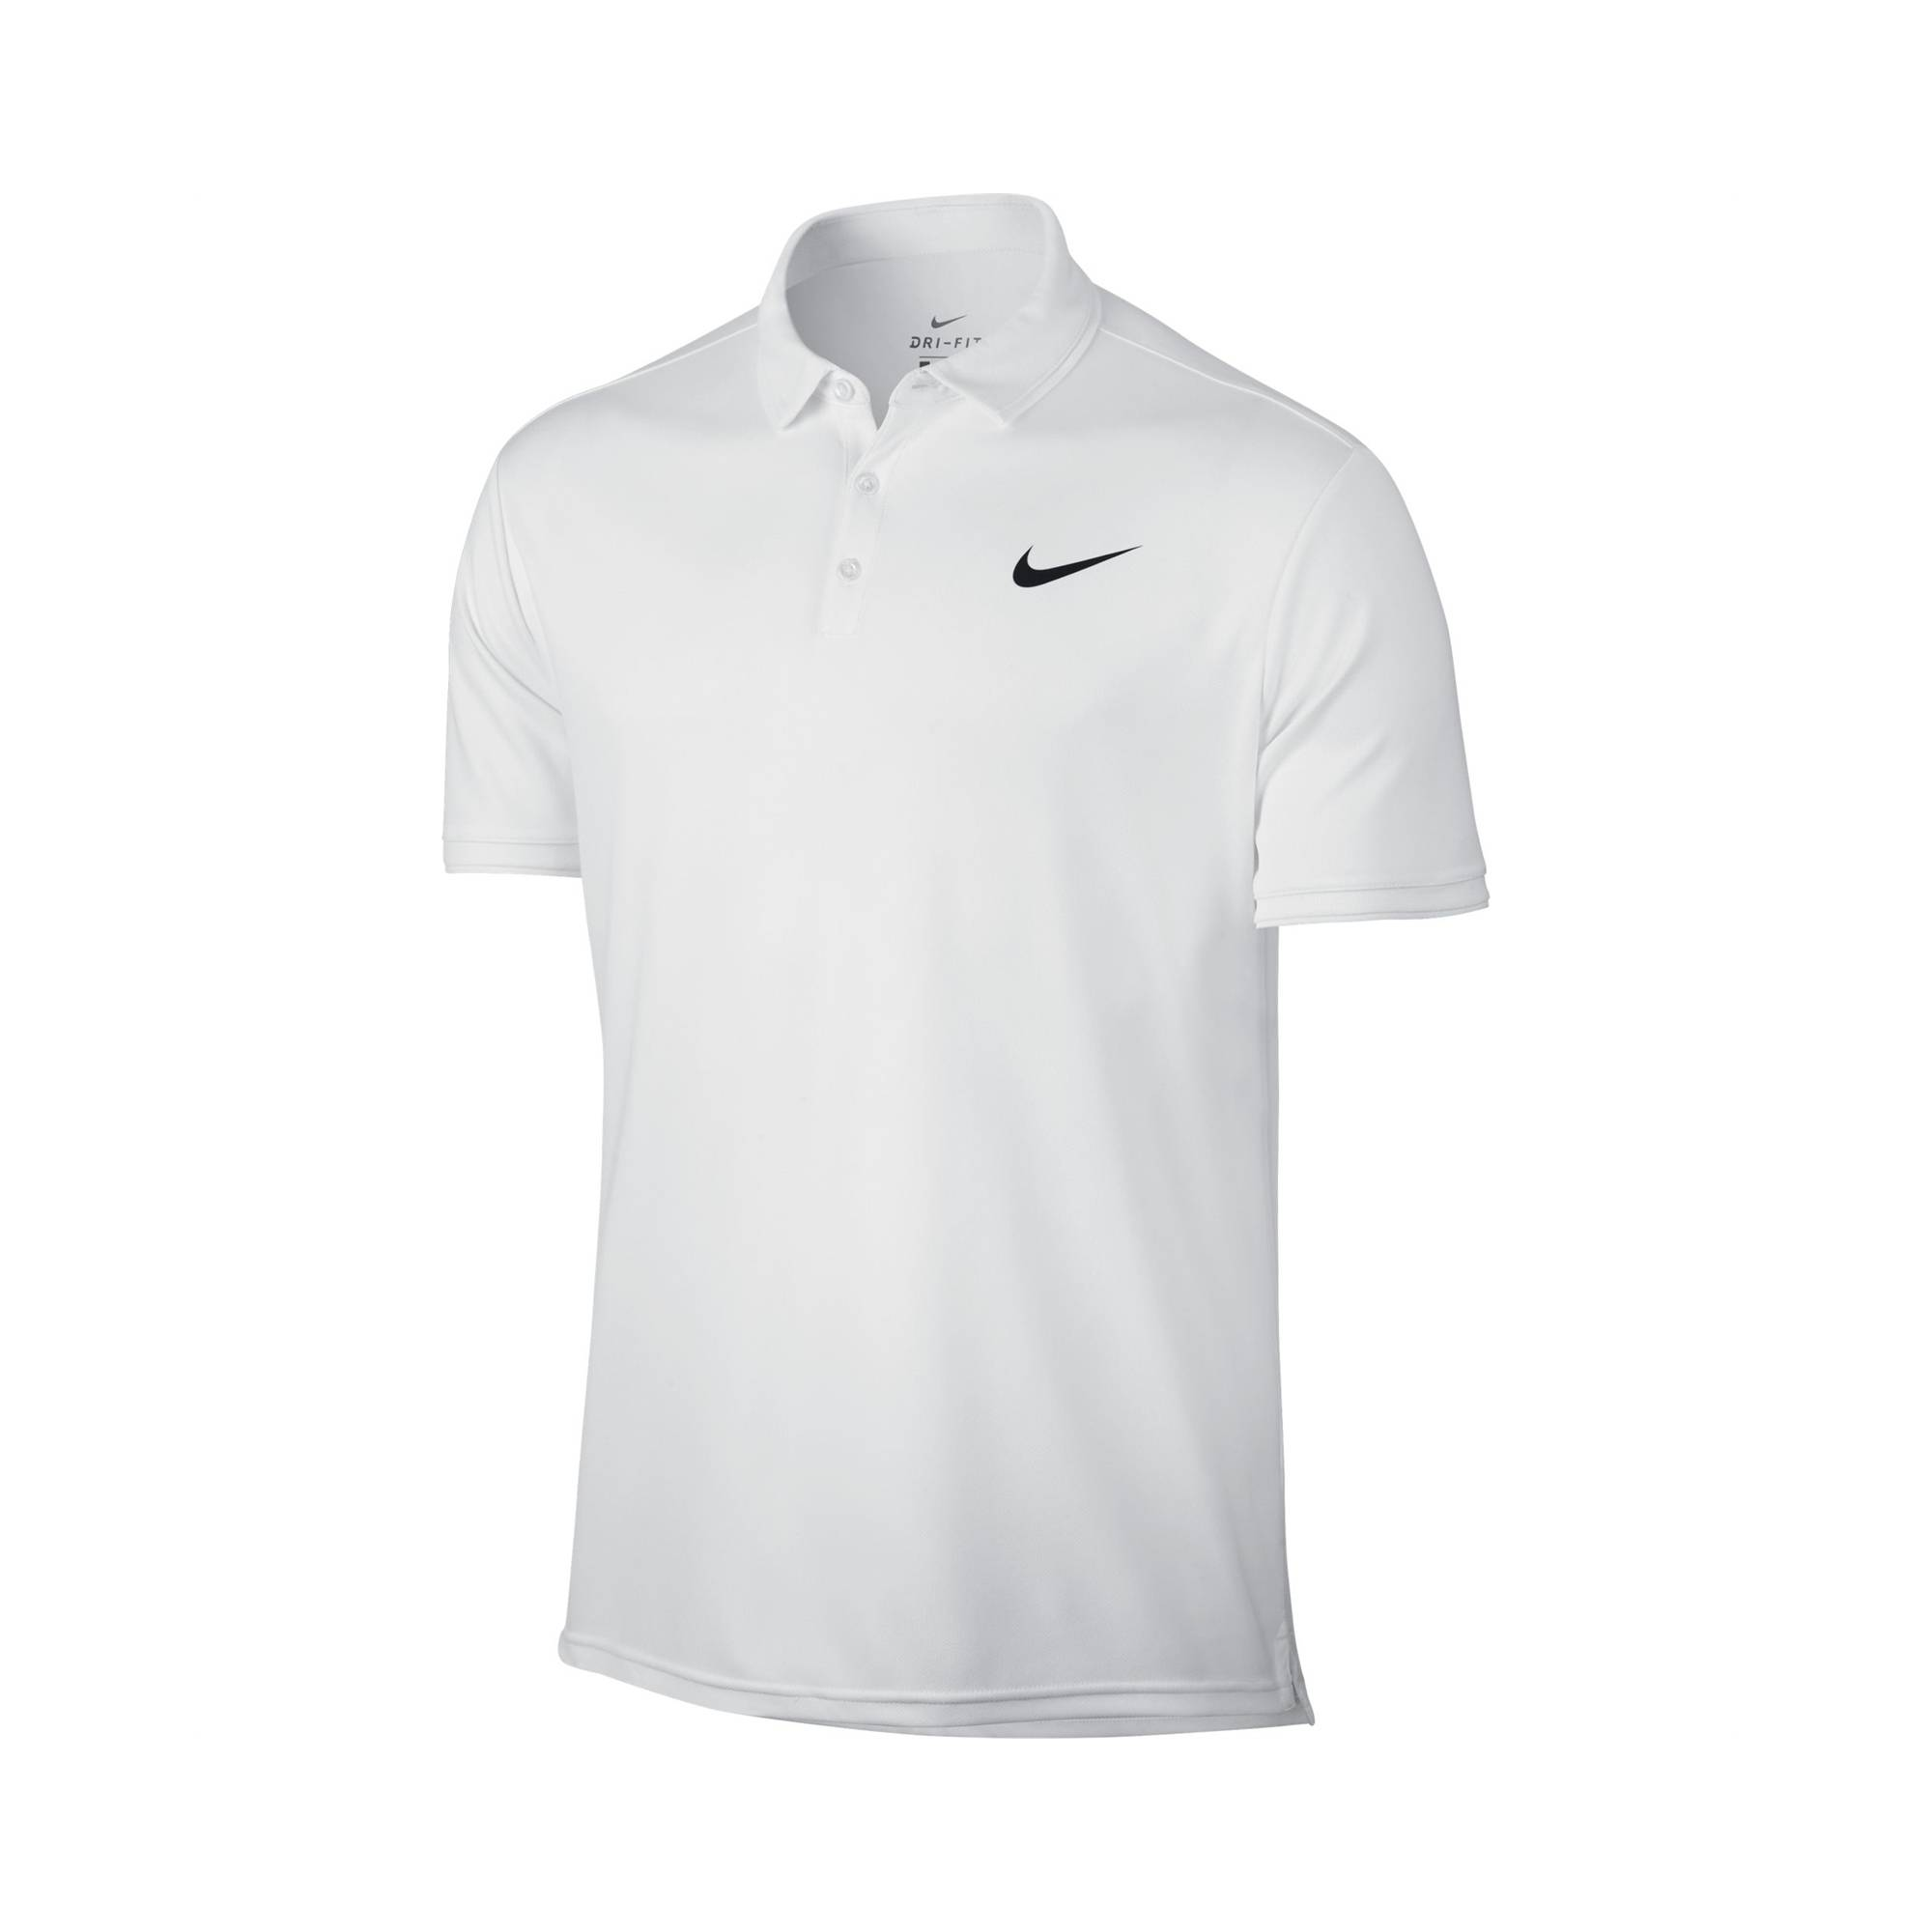 Image of Nike Dry Team Polo All White L